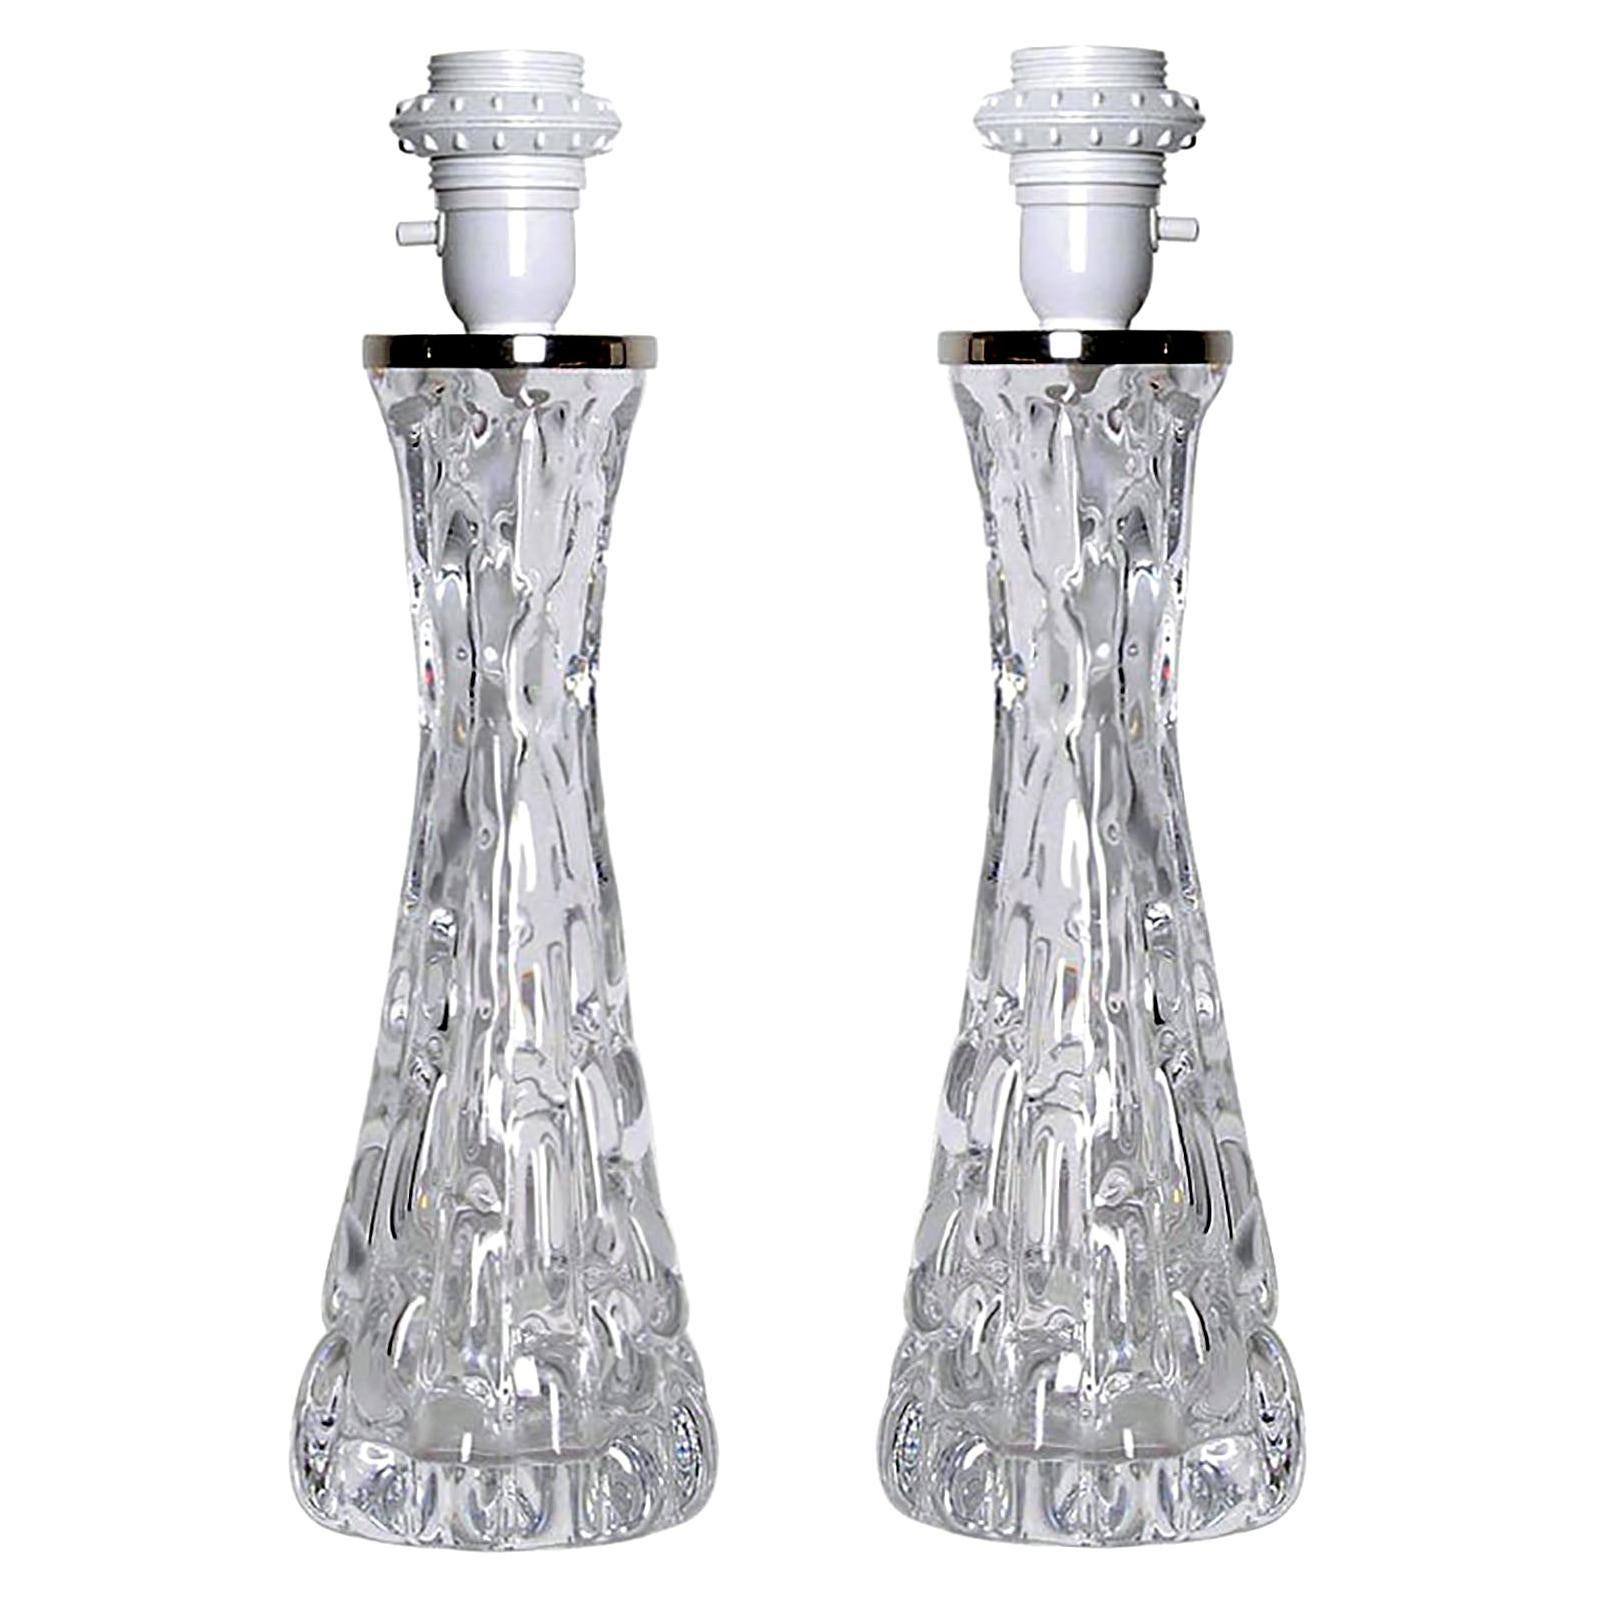 Vintage Crystal Table Lamps by Carl Fagerlund for Orrefors, 1970s